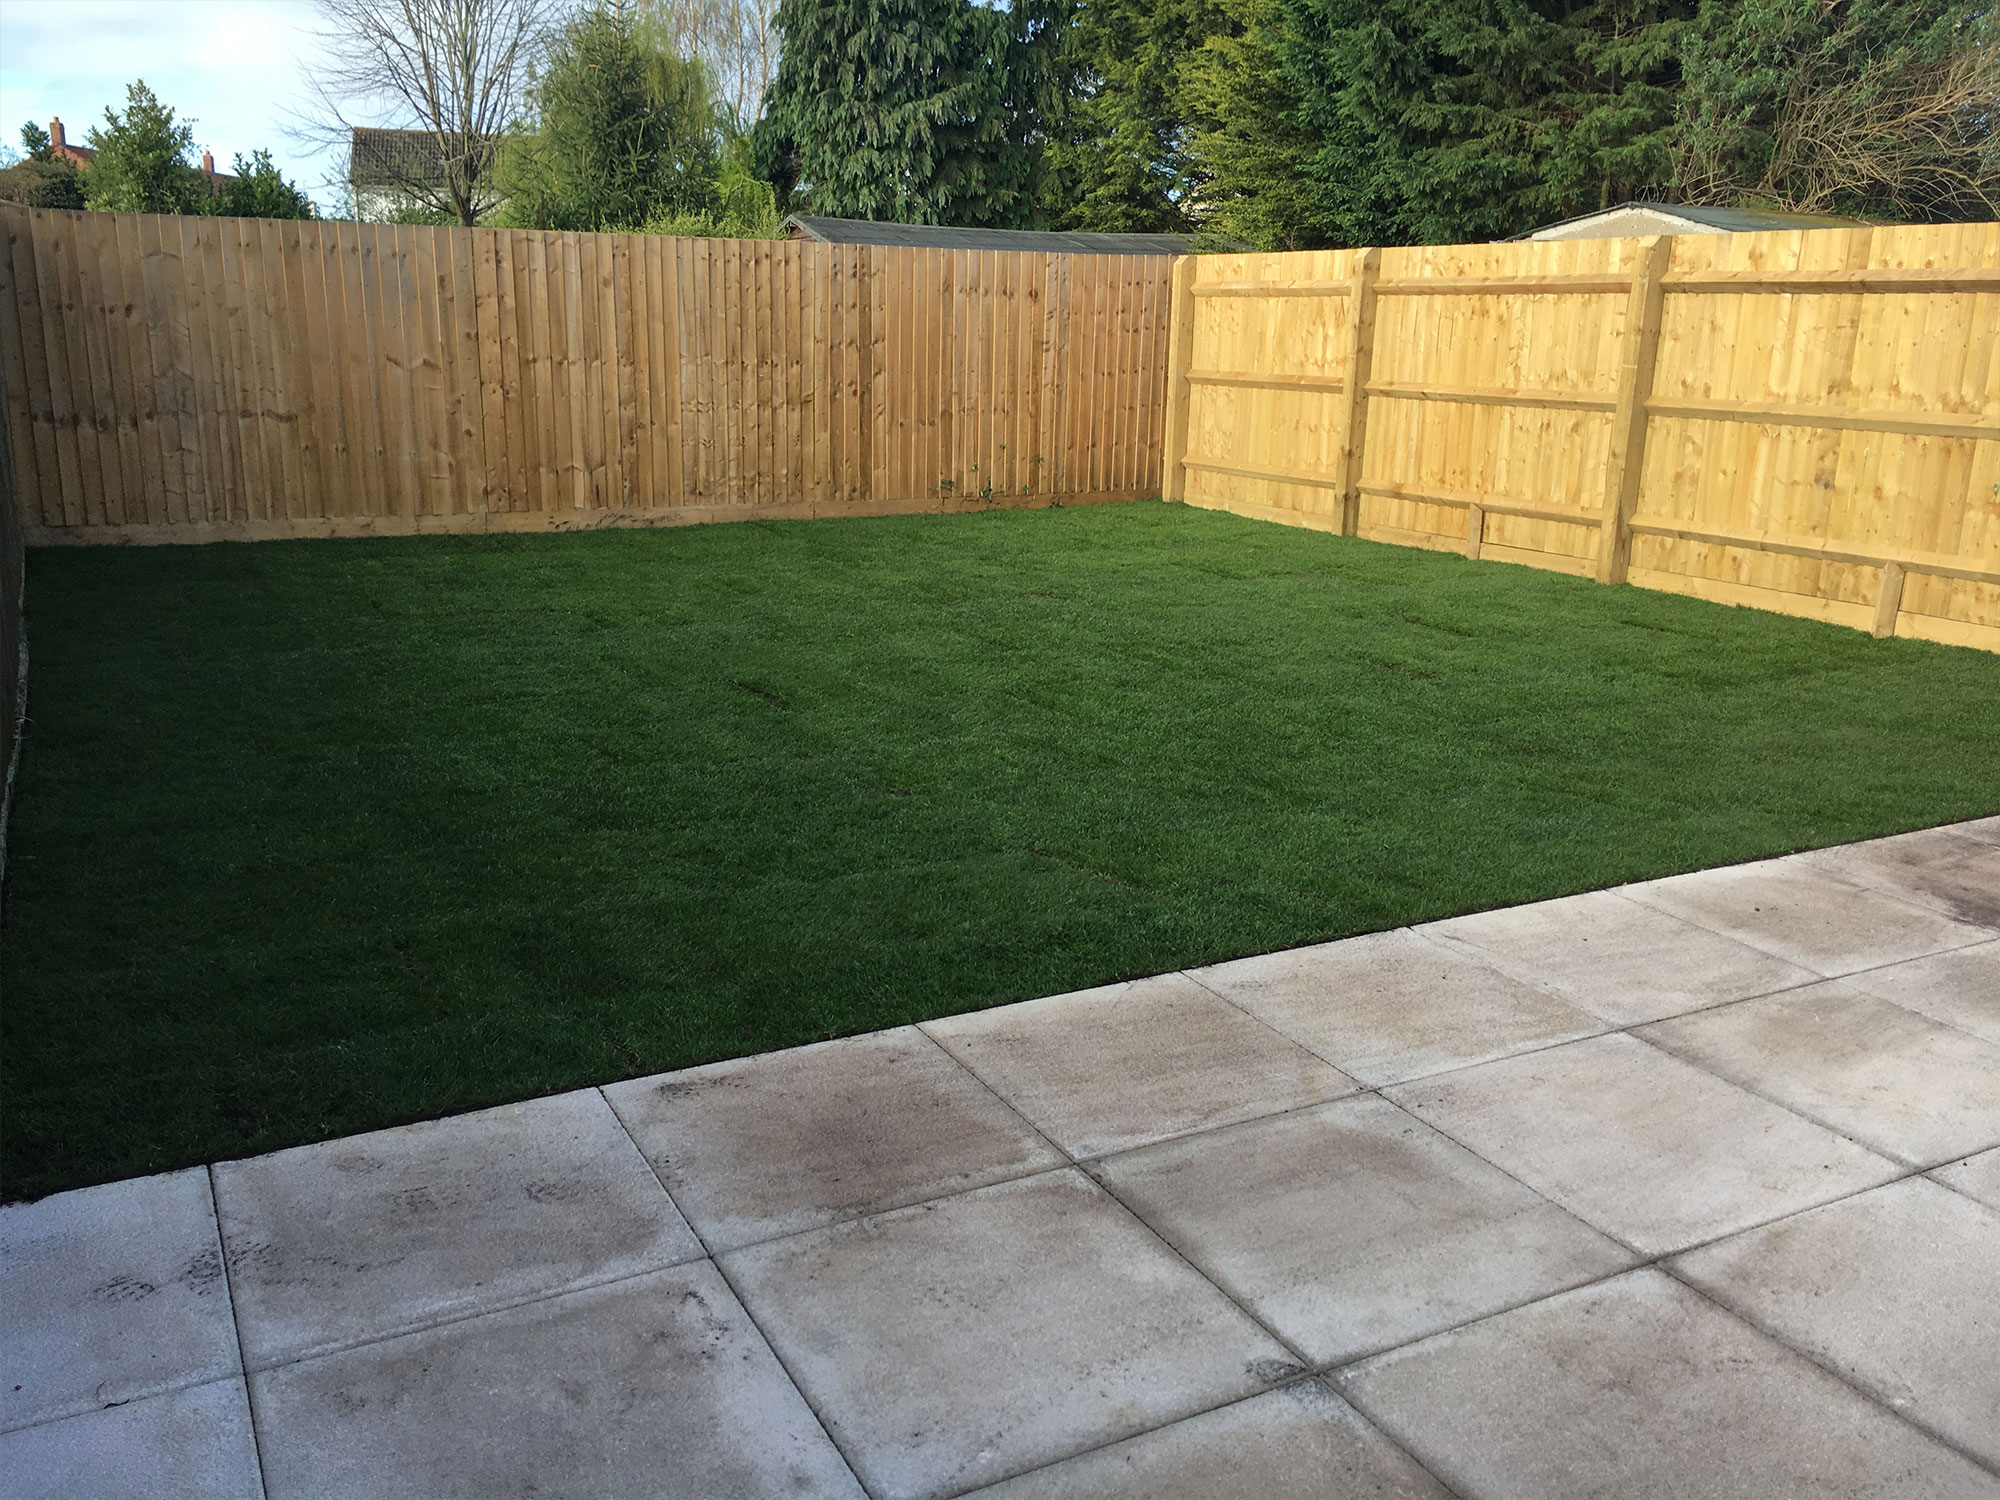 Landscaping - lawn care services